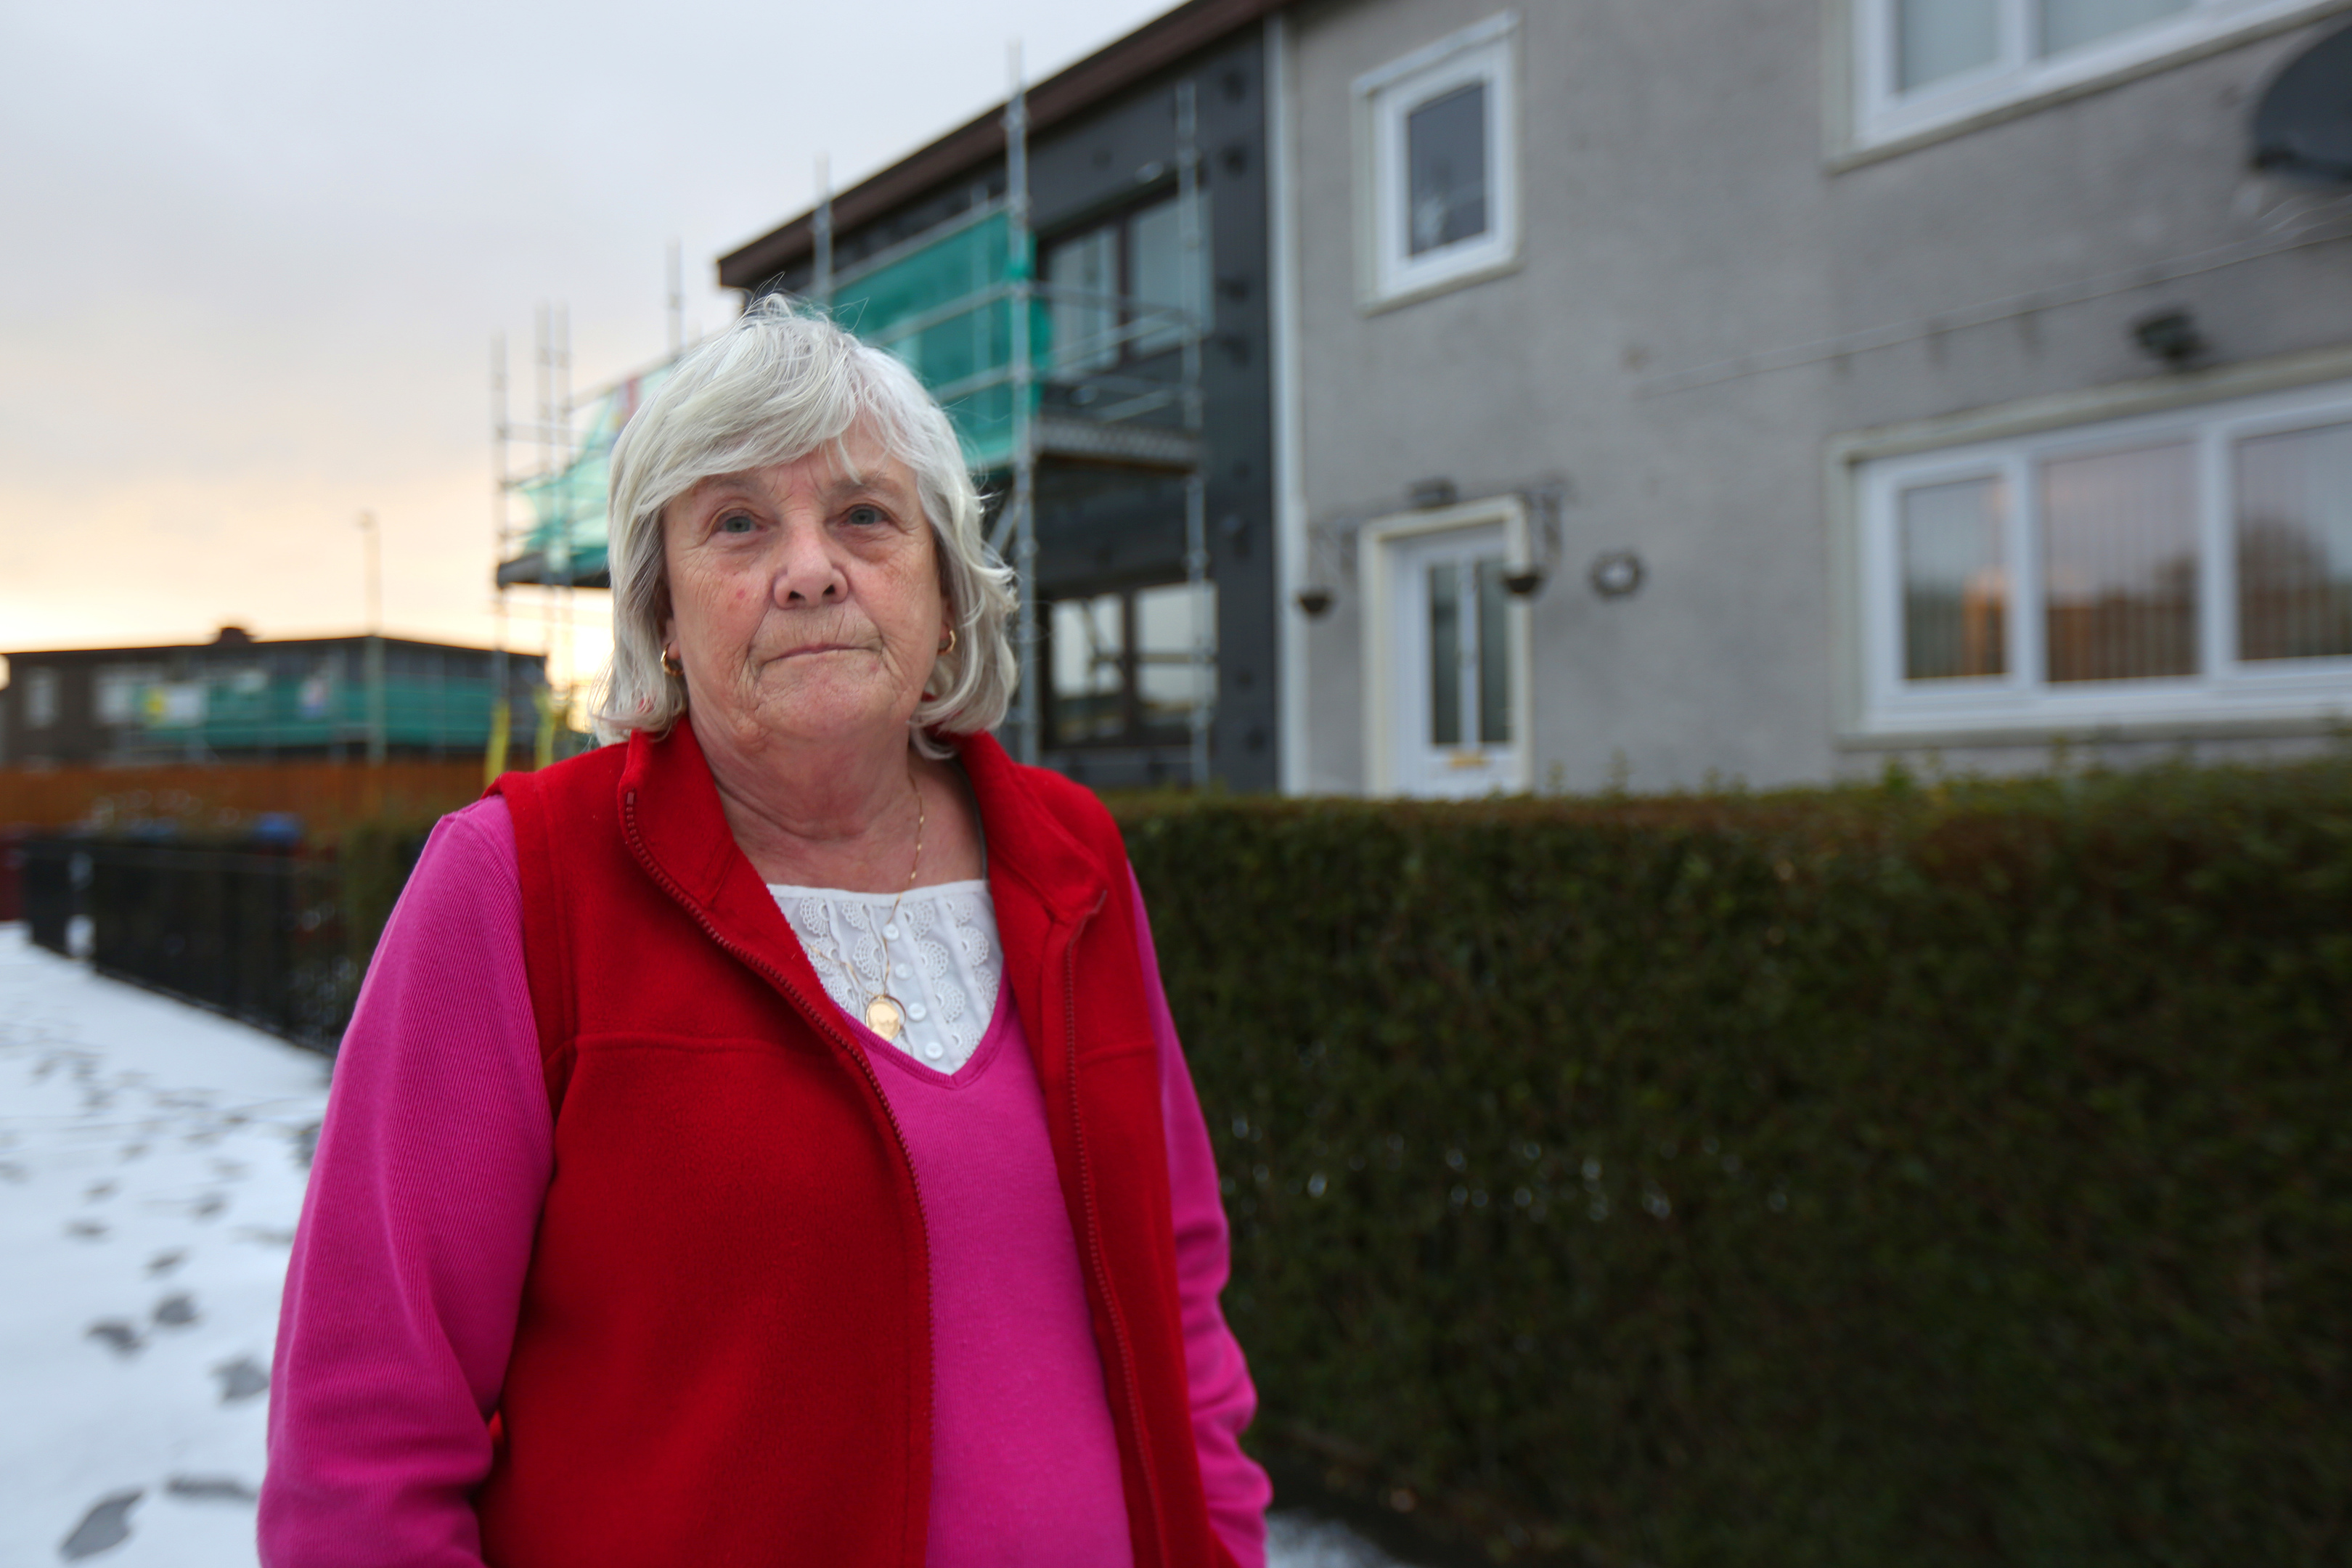 Margaret Davidson outside her property on Dryburgh Street. The house to the left of hers is currently undergoing work to install the external wall insulation, which she is not eligible for according to the council.